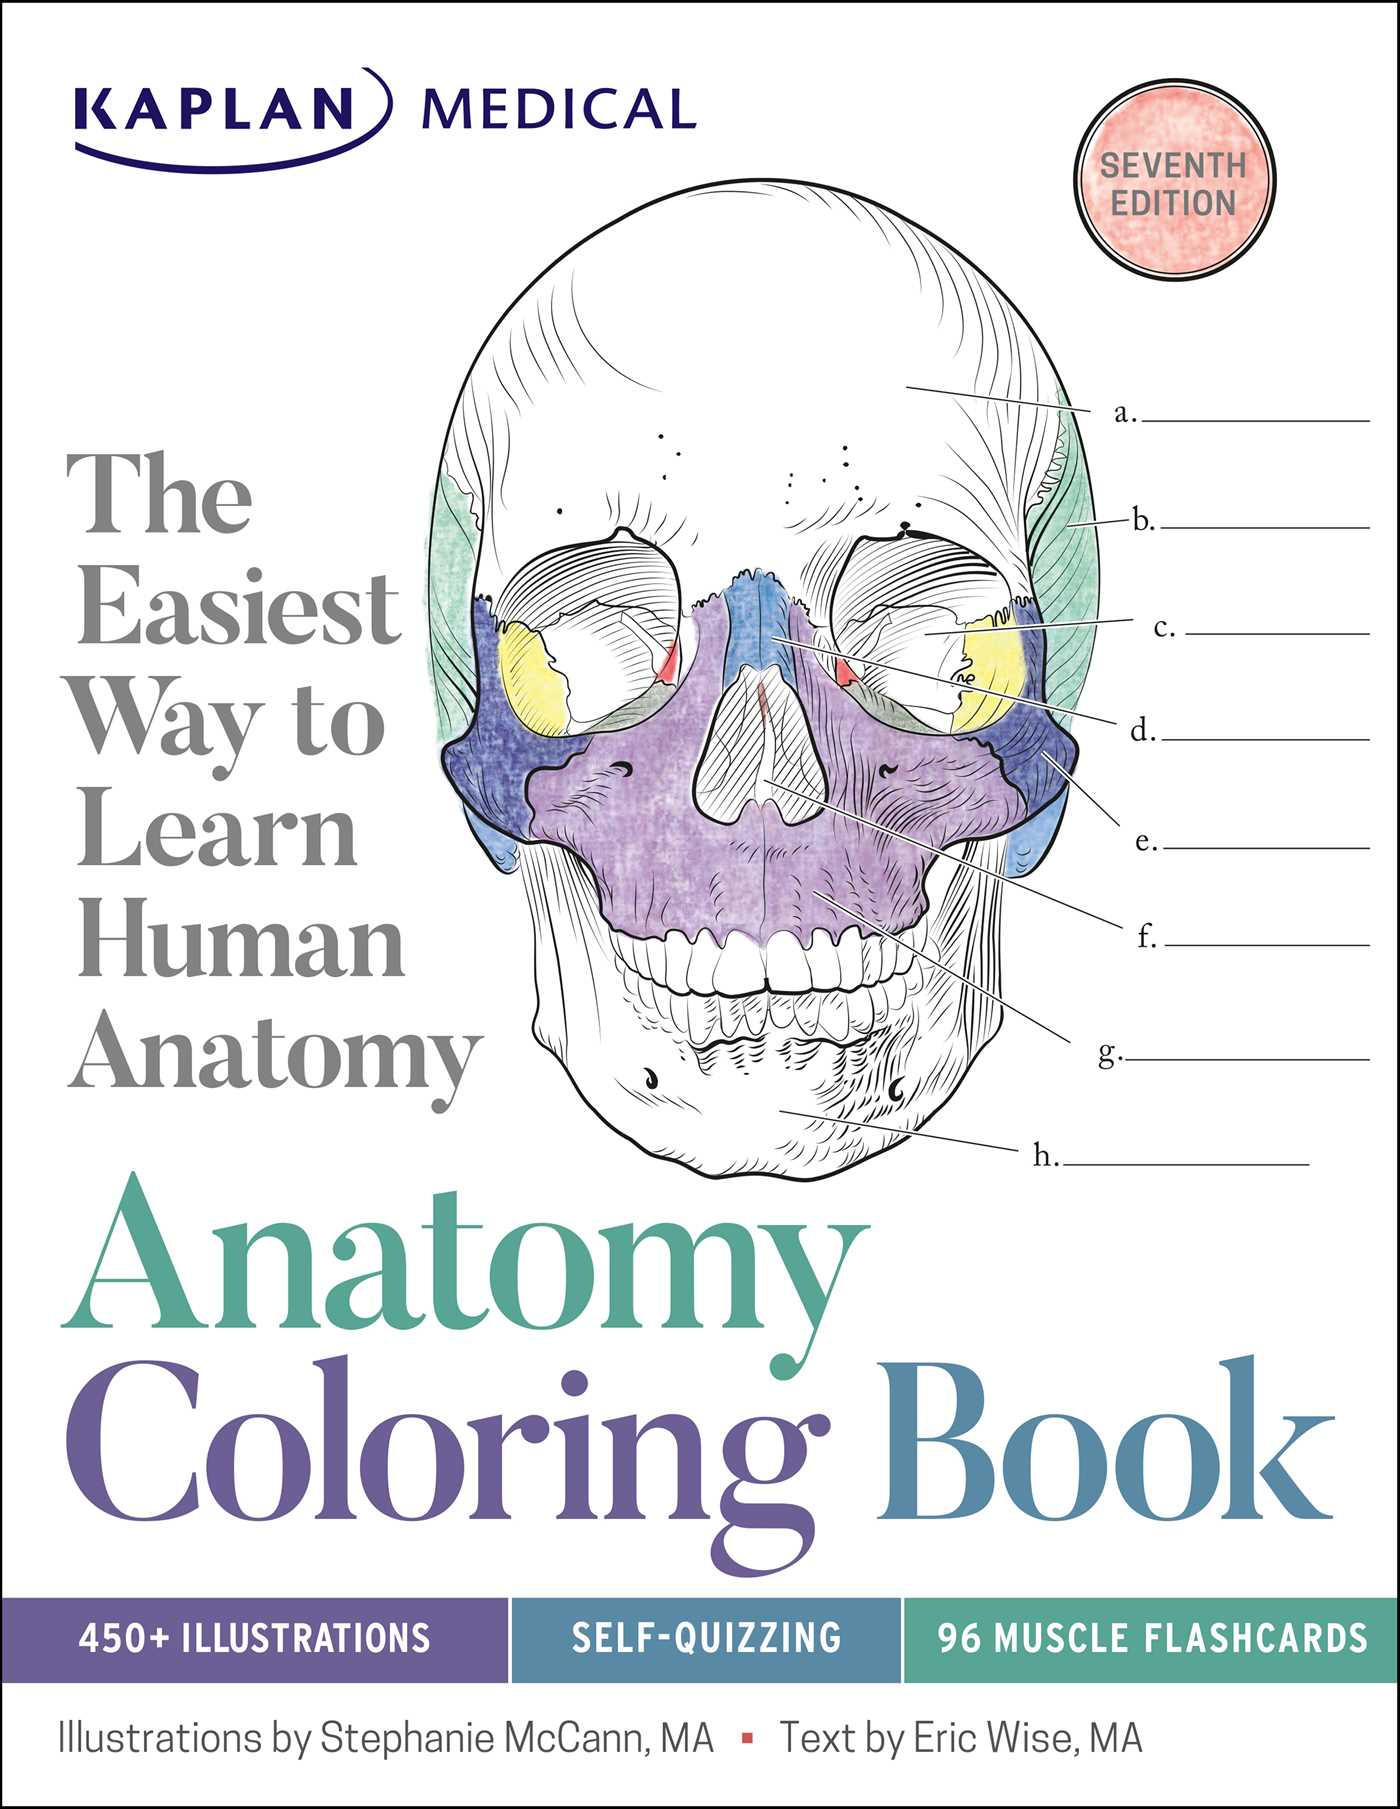 - Anatomy Coloring Book Book By Stephanie McCann, Eric Wise